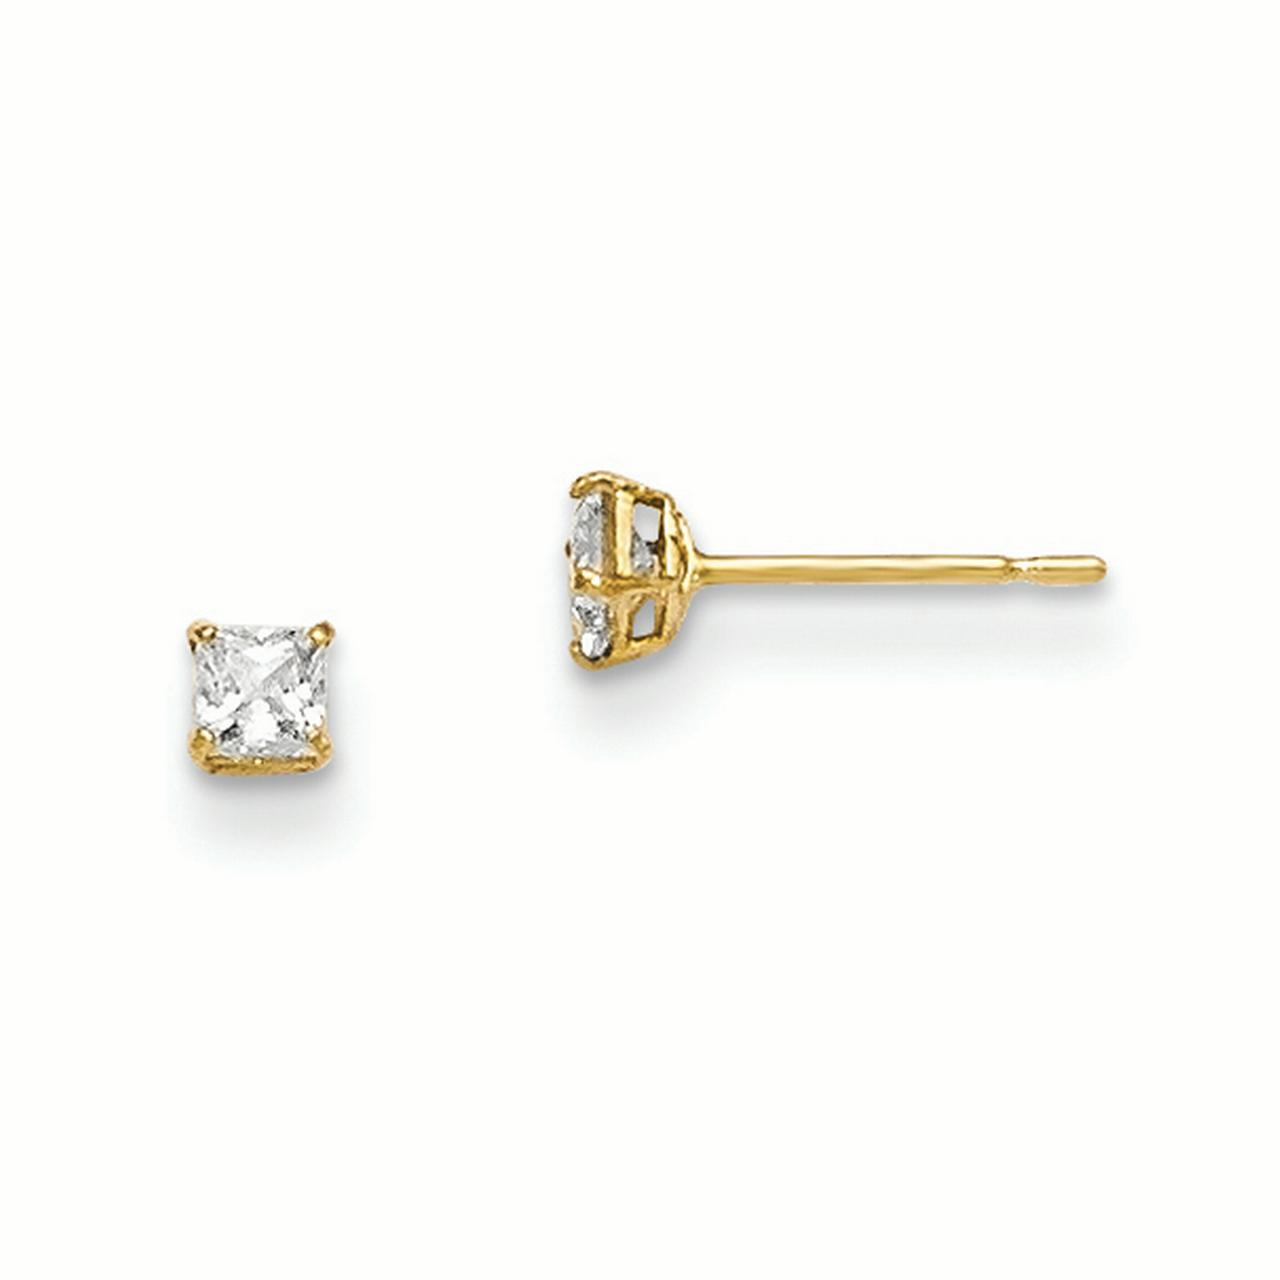 14k Yellow Gold 2.5mm Square Cubic Zirconia Cz Basket Set Stud Earrings Fine Jewelry Gifts For Women For Her - image 4 de 4